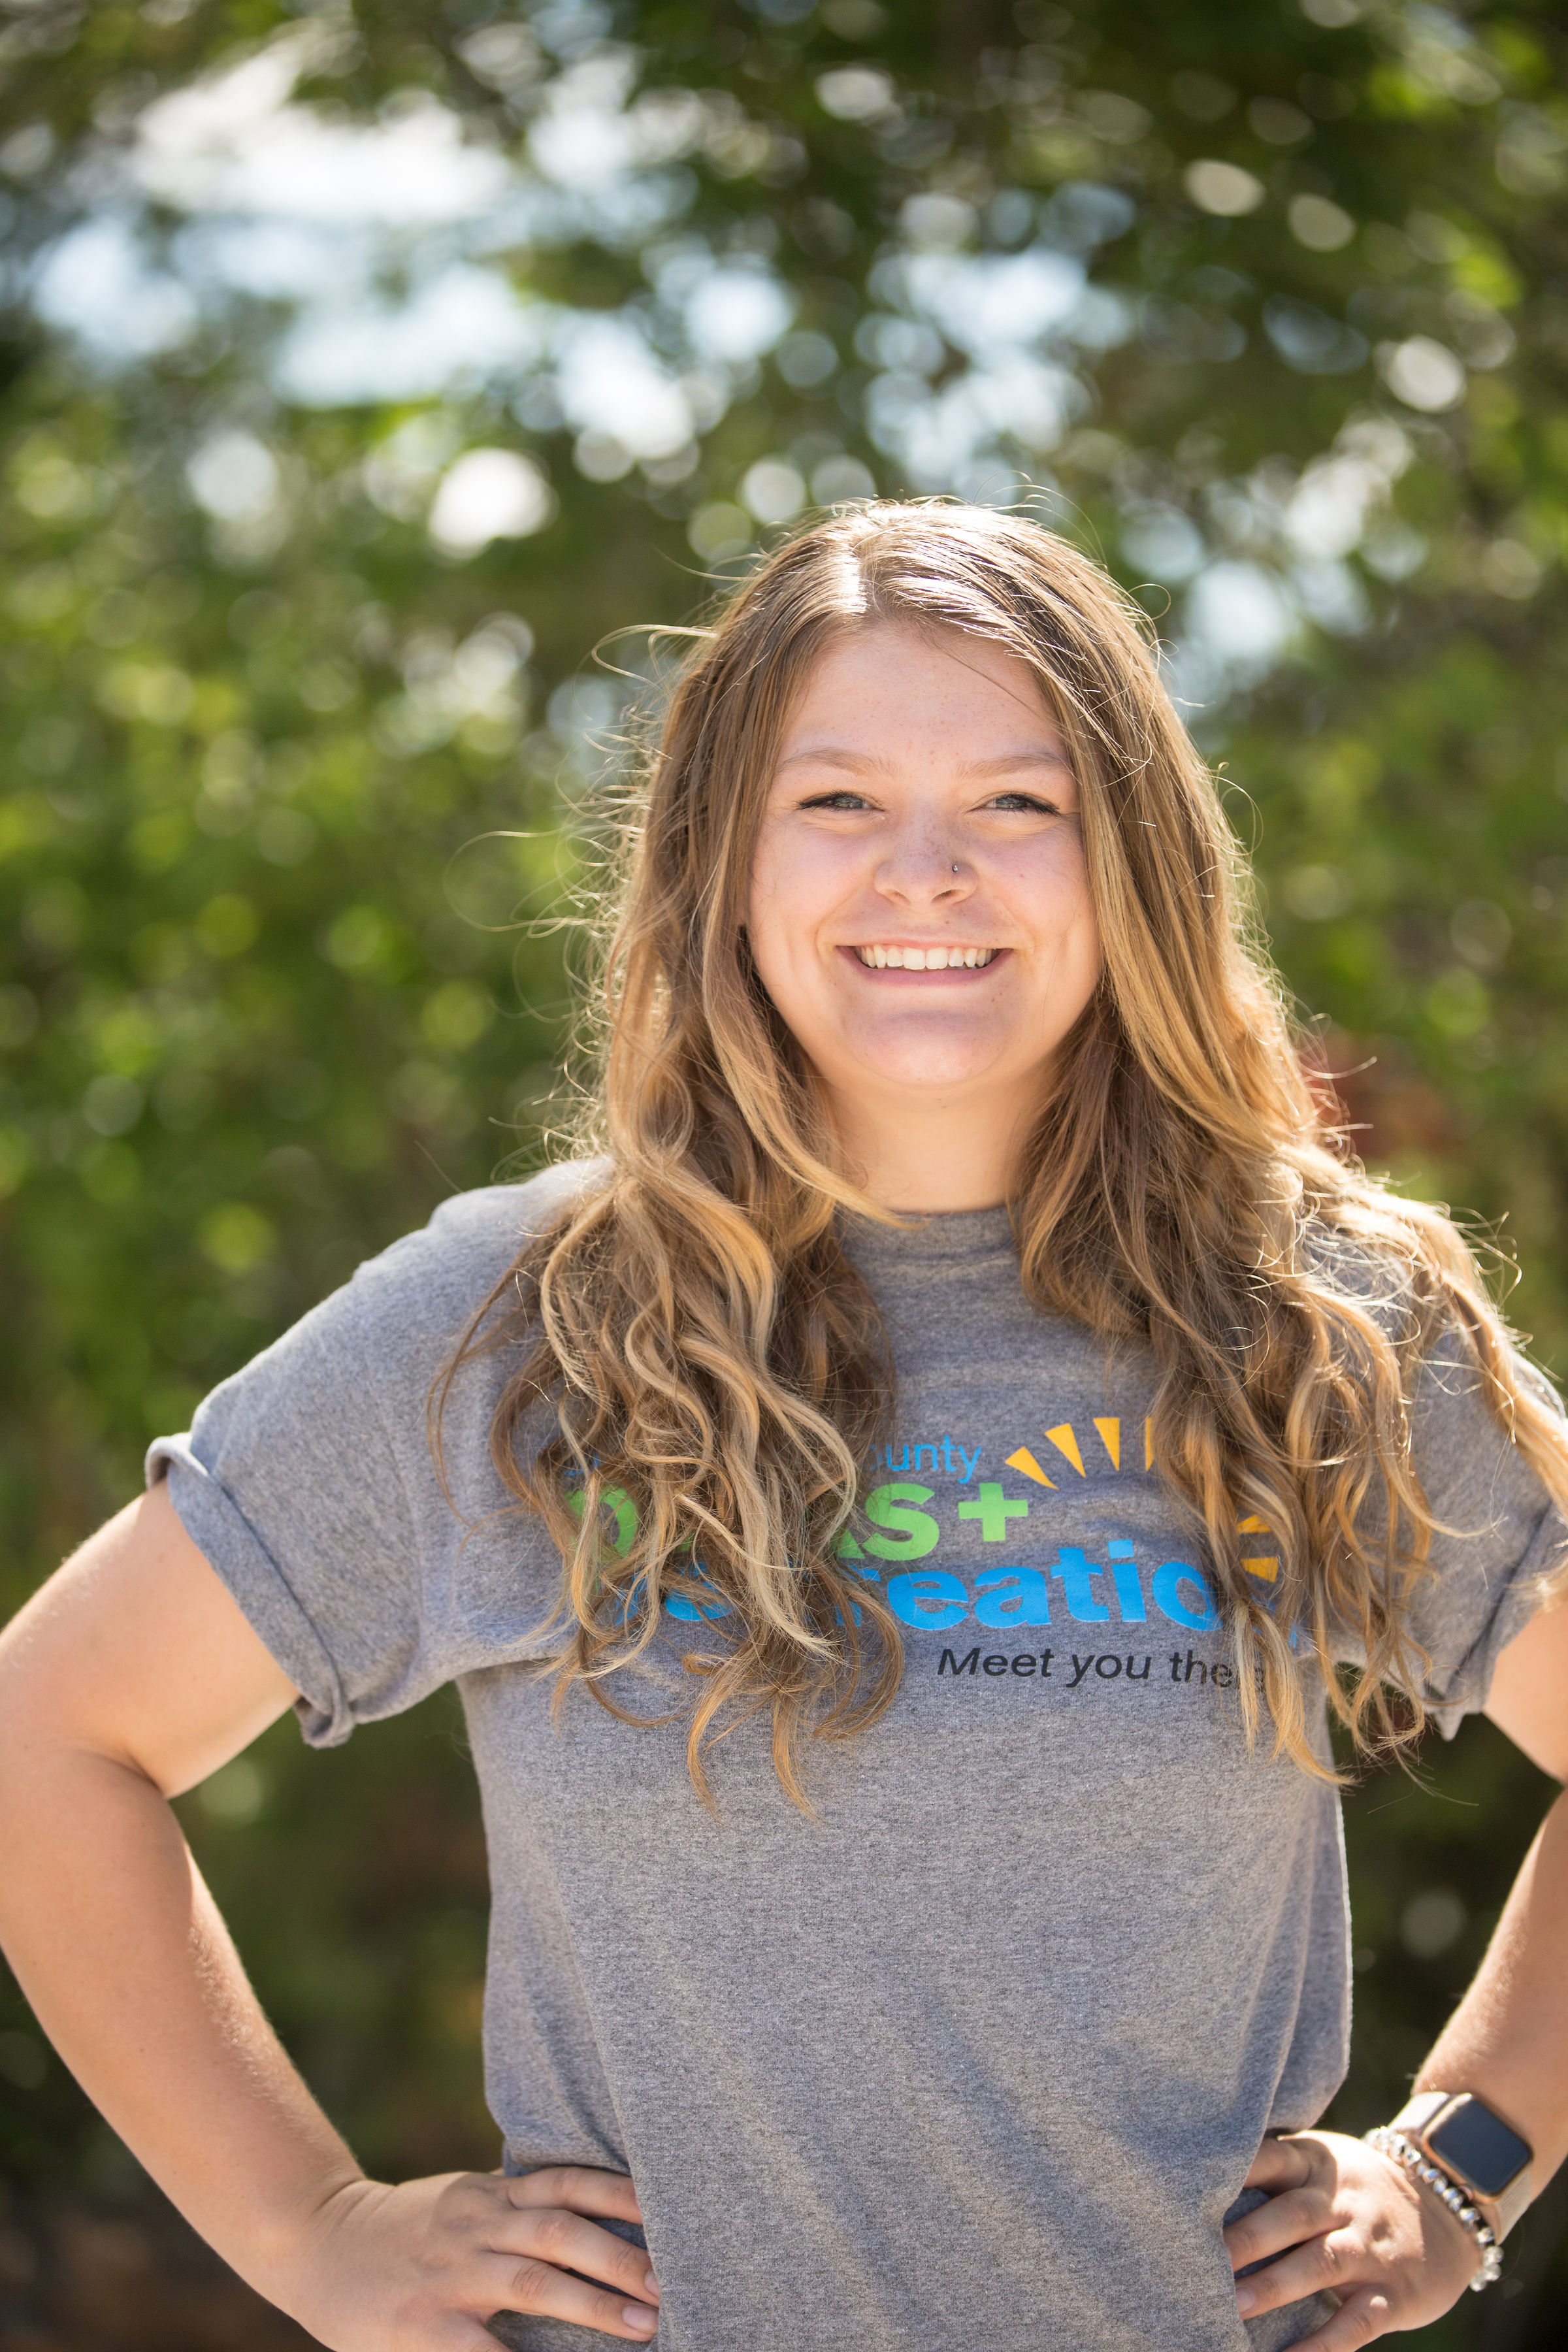 Grace Mlynek, an 18-year-old manager of the Lake Shawnee Adventure Cove paddle boats for Shawnee County Parks and Recreation, believes her problem-solving skills were a factor in securing her current role.